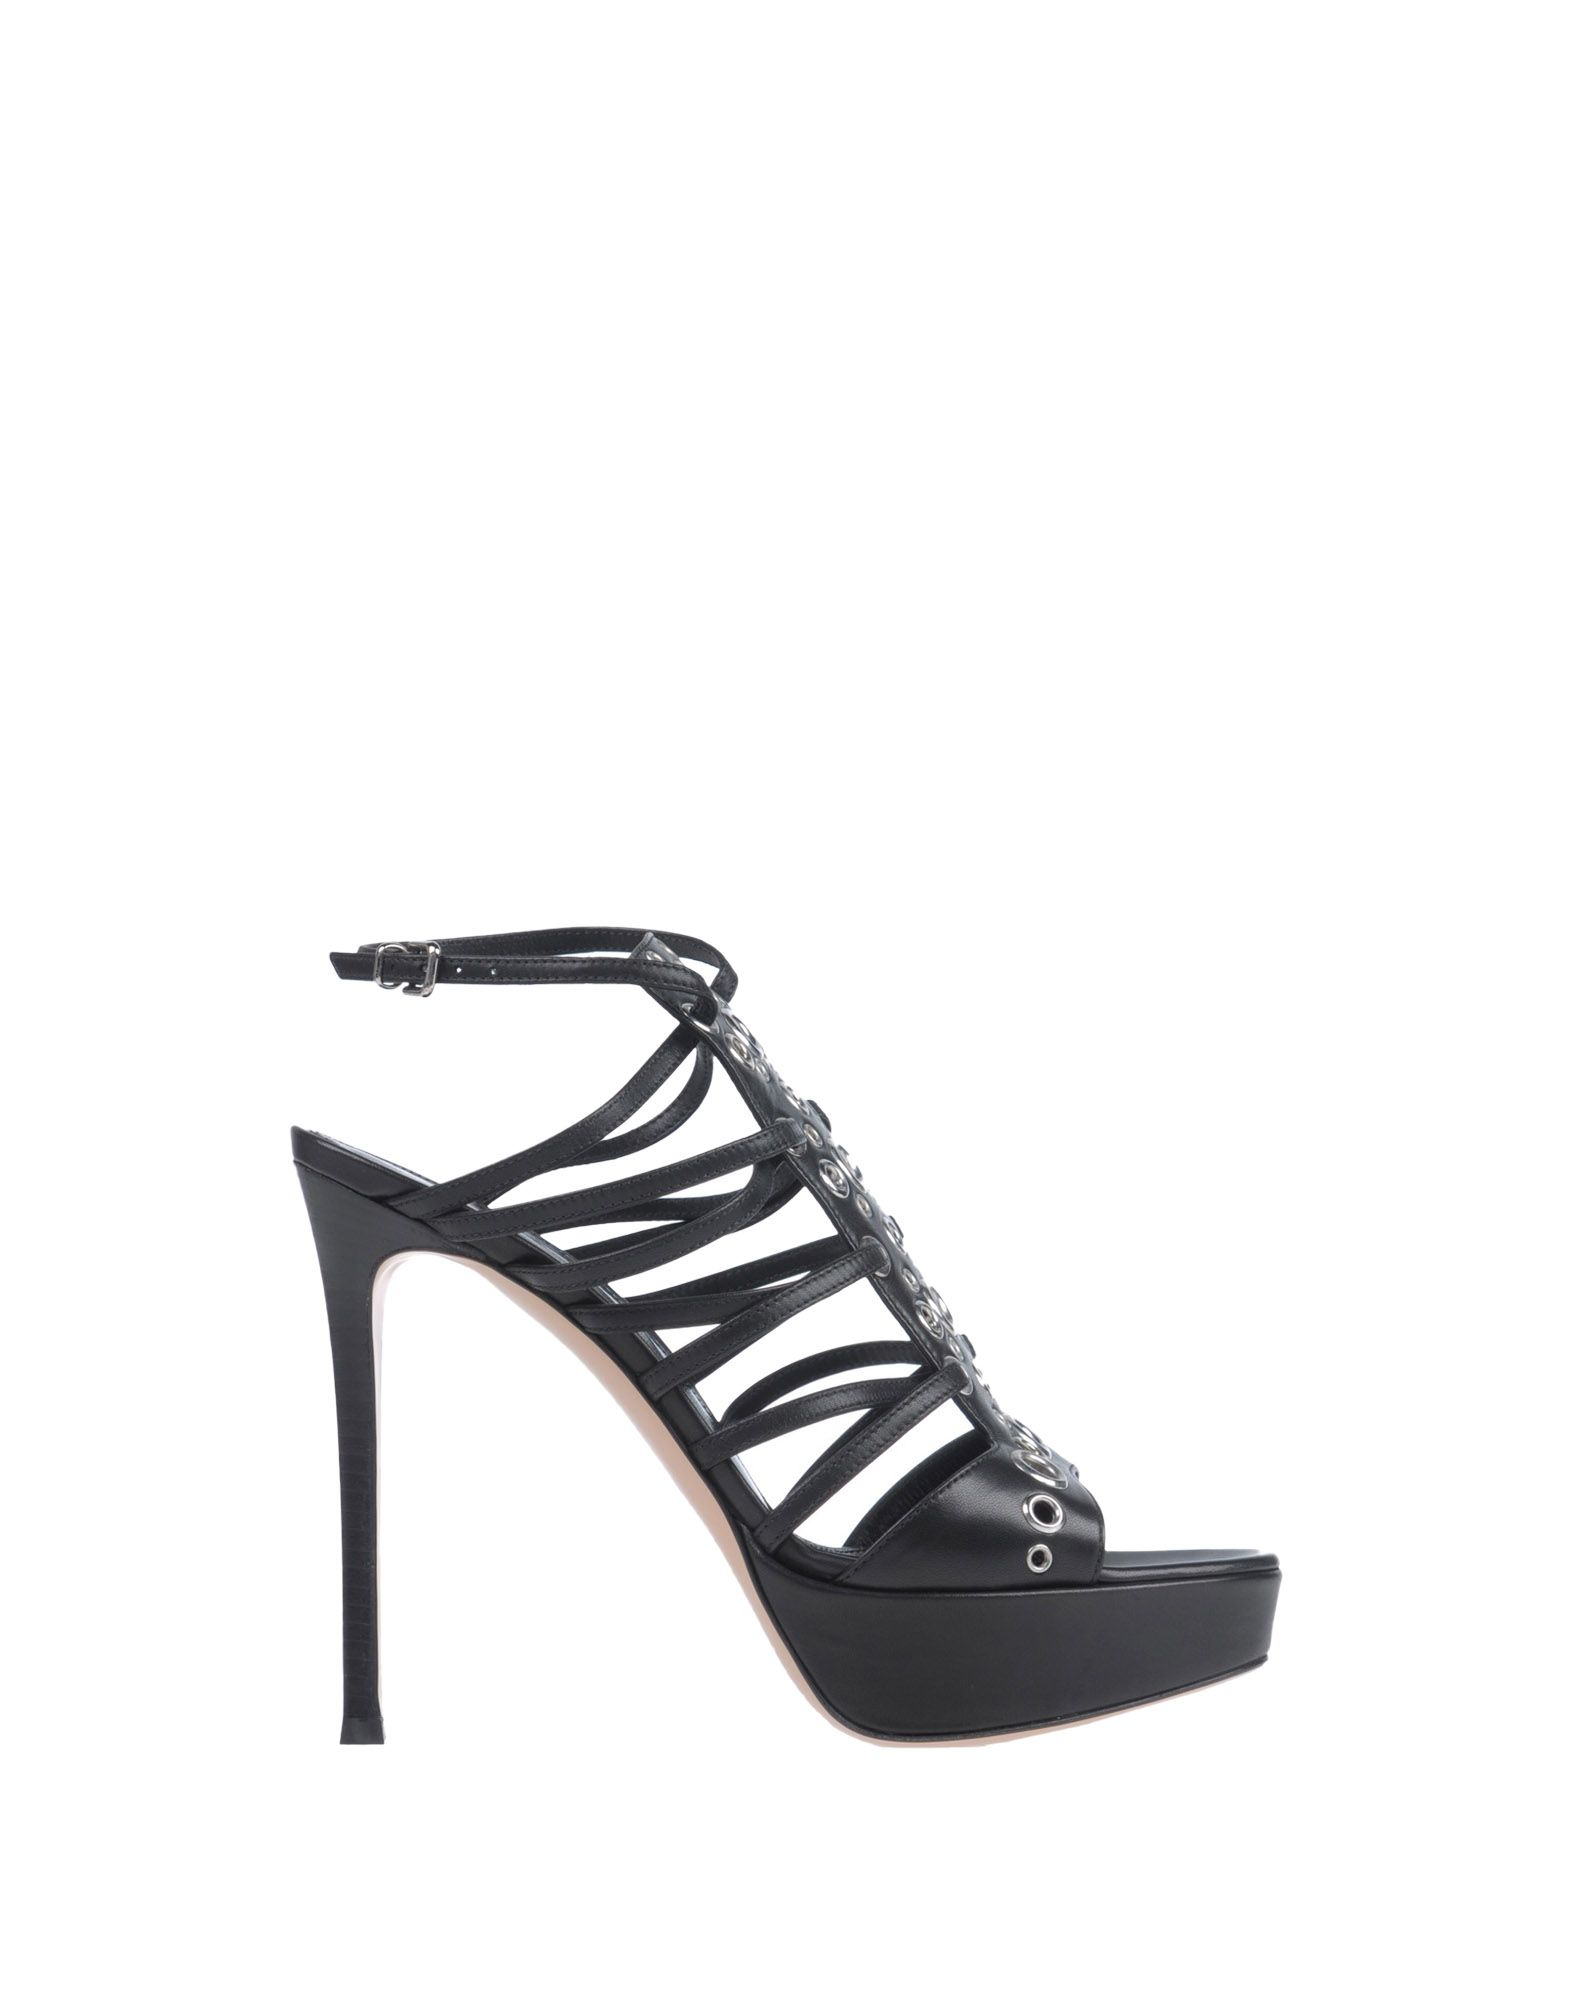 Sandales Gianvito Rossi Femme - Sandales Gianvito Rossi sur